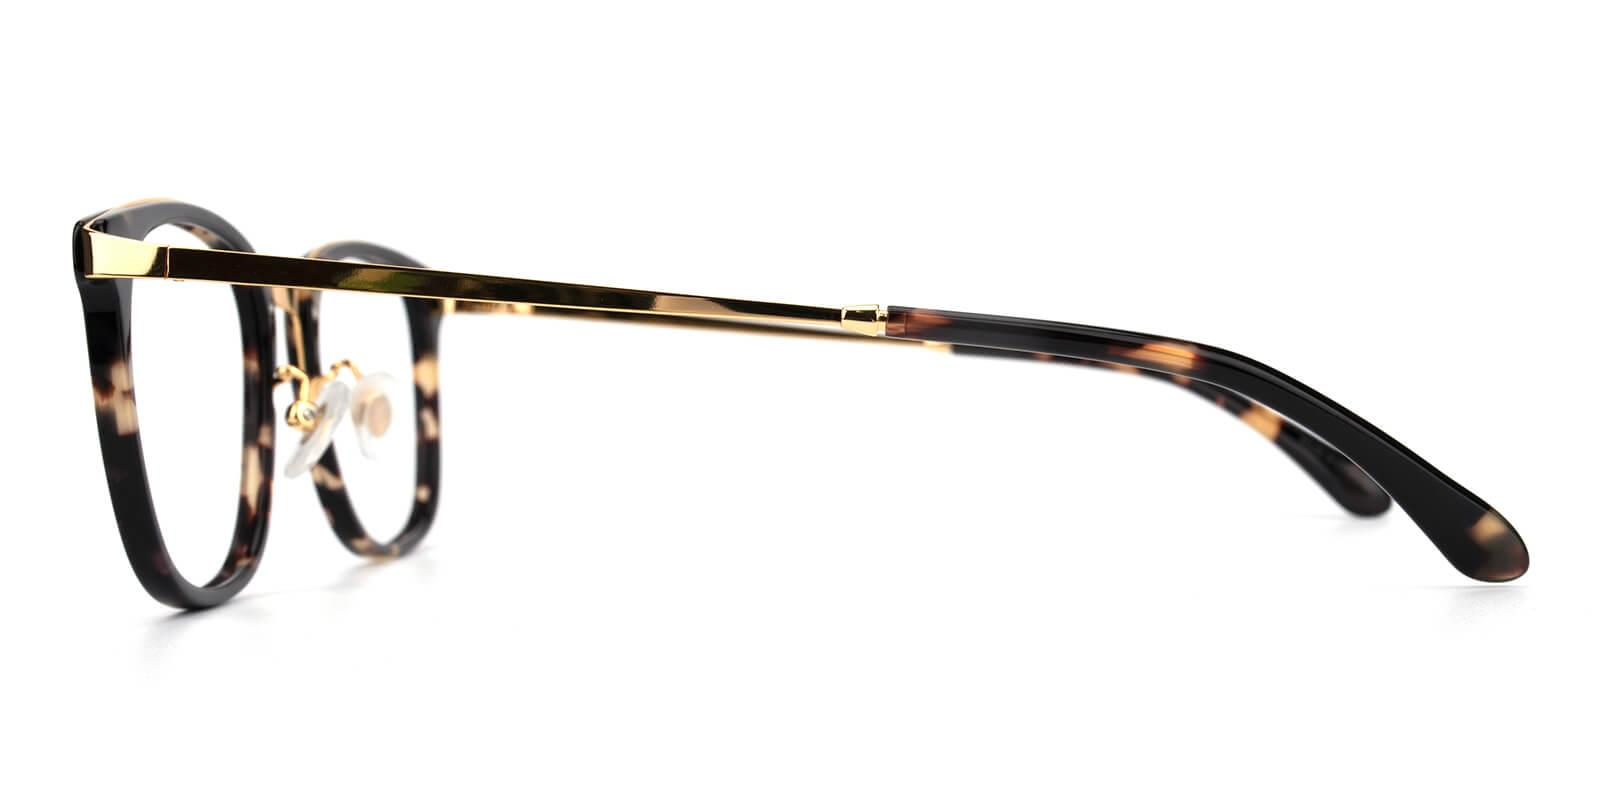 Keronito-Leopard-Square-Metal-Eyeglasses-additional3